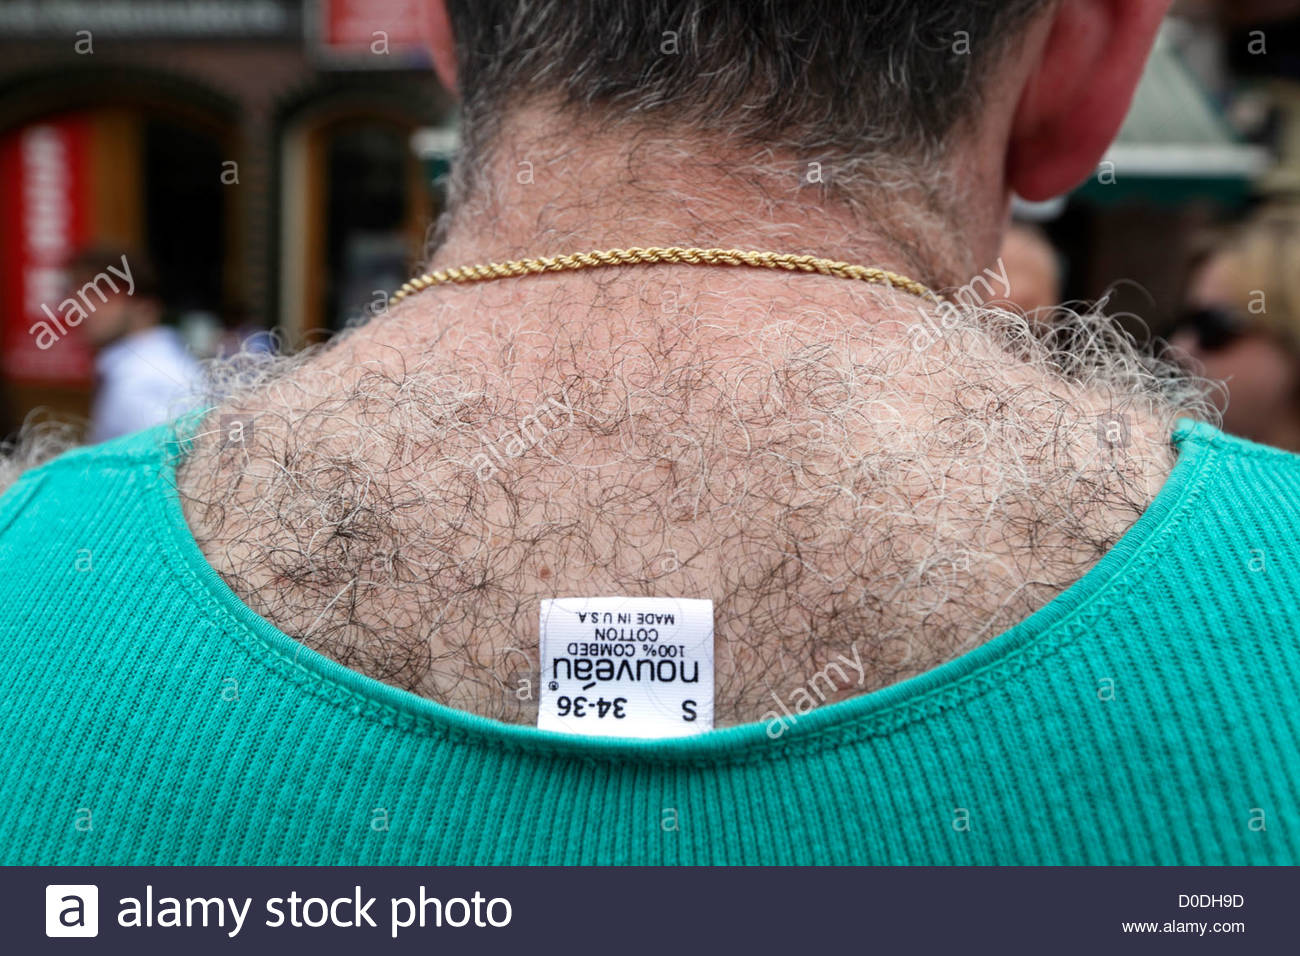 incredible beard and neck hair! | Can only imagine what's ... |Hairy Back And Neck